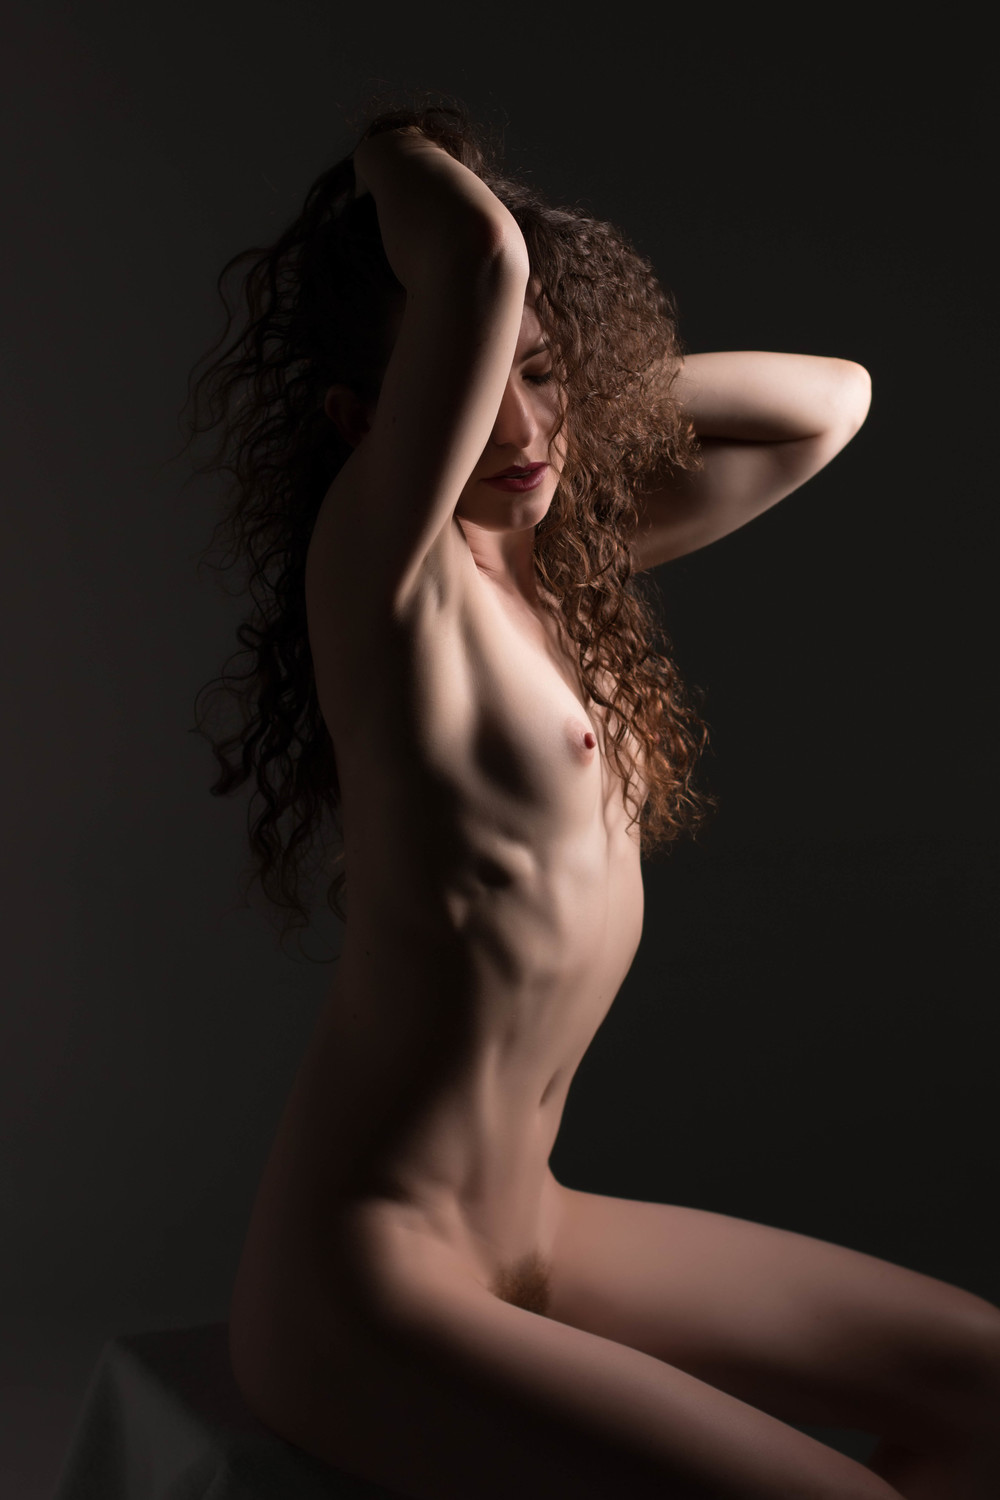 This is Keira Grant from Texas and she is a classic artistic nude model. (best I've ever seen)